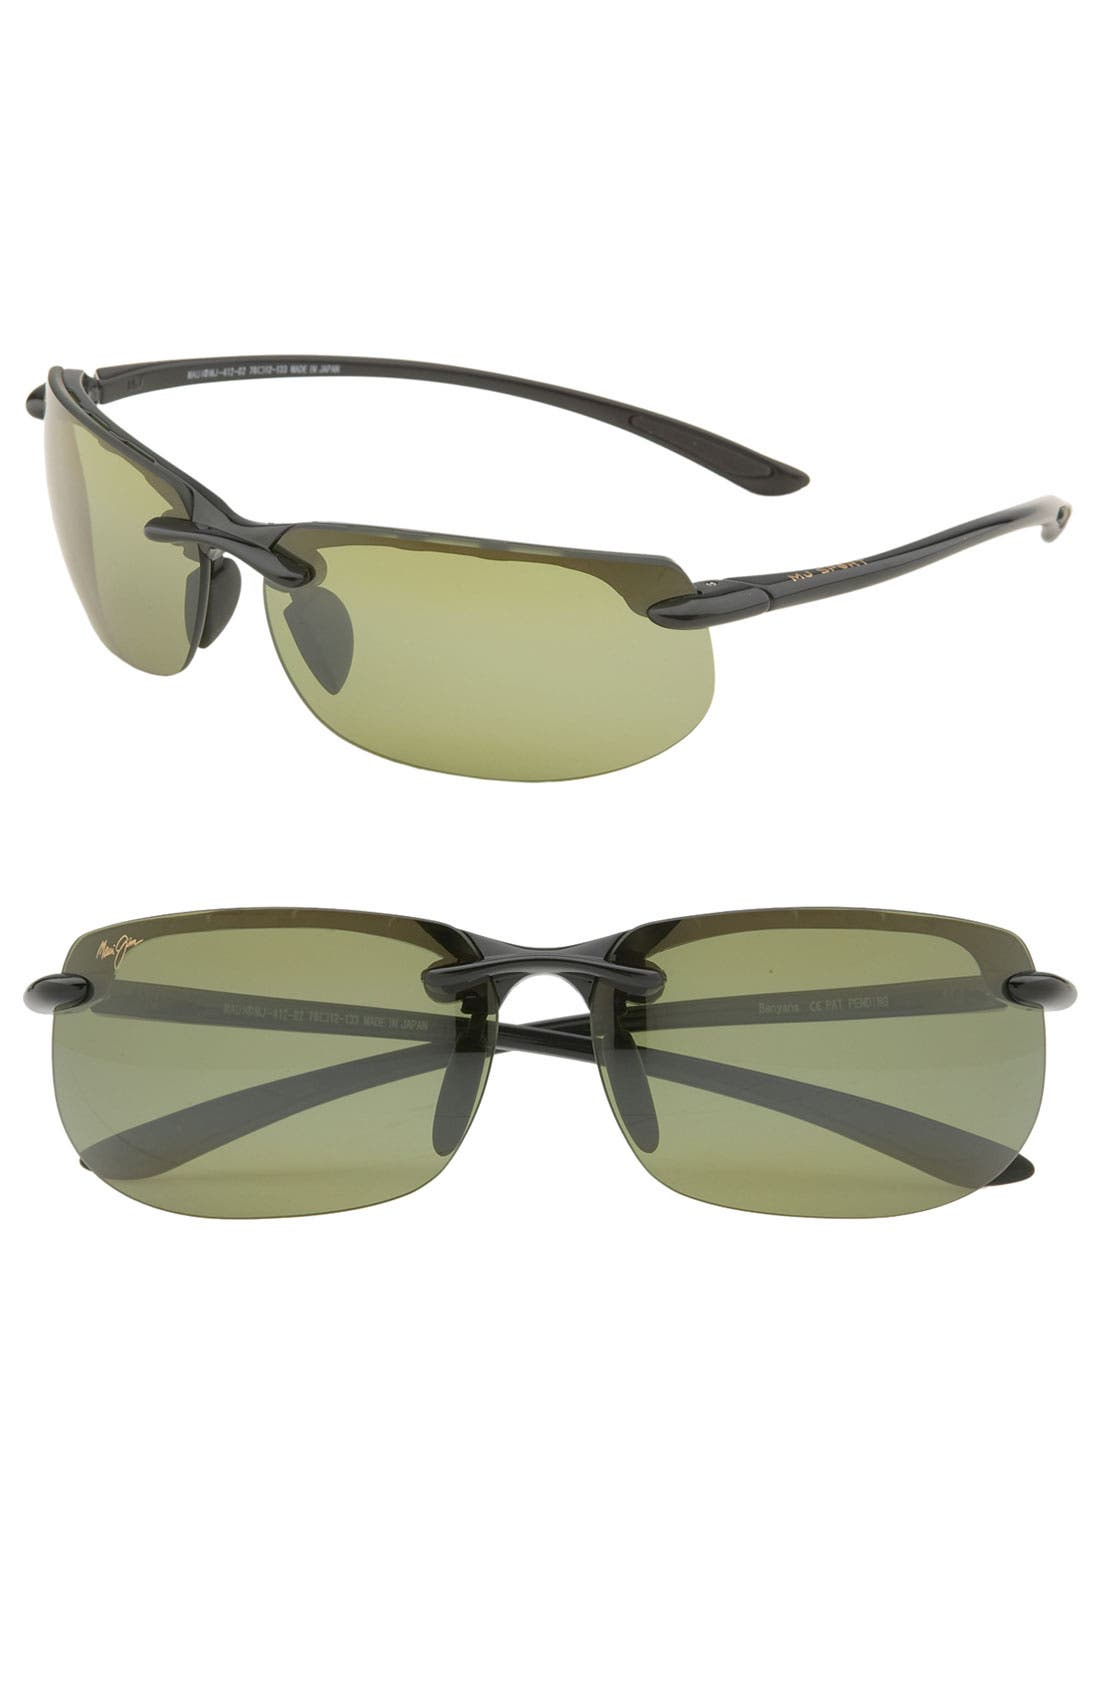 'Banyans - PolarizedPlus<sup>®</sup>2' 67mm Sunglasses,                             Main thumbnail 1, color,                             Gloss Black / Ht Lens